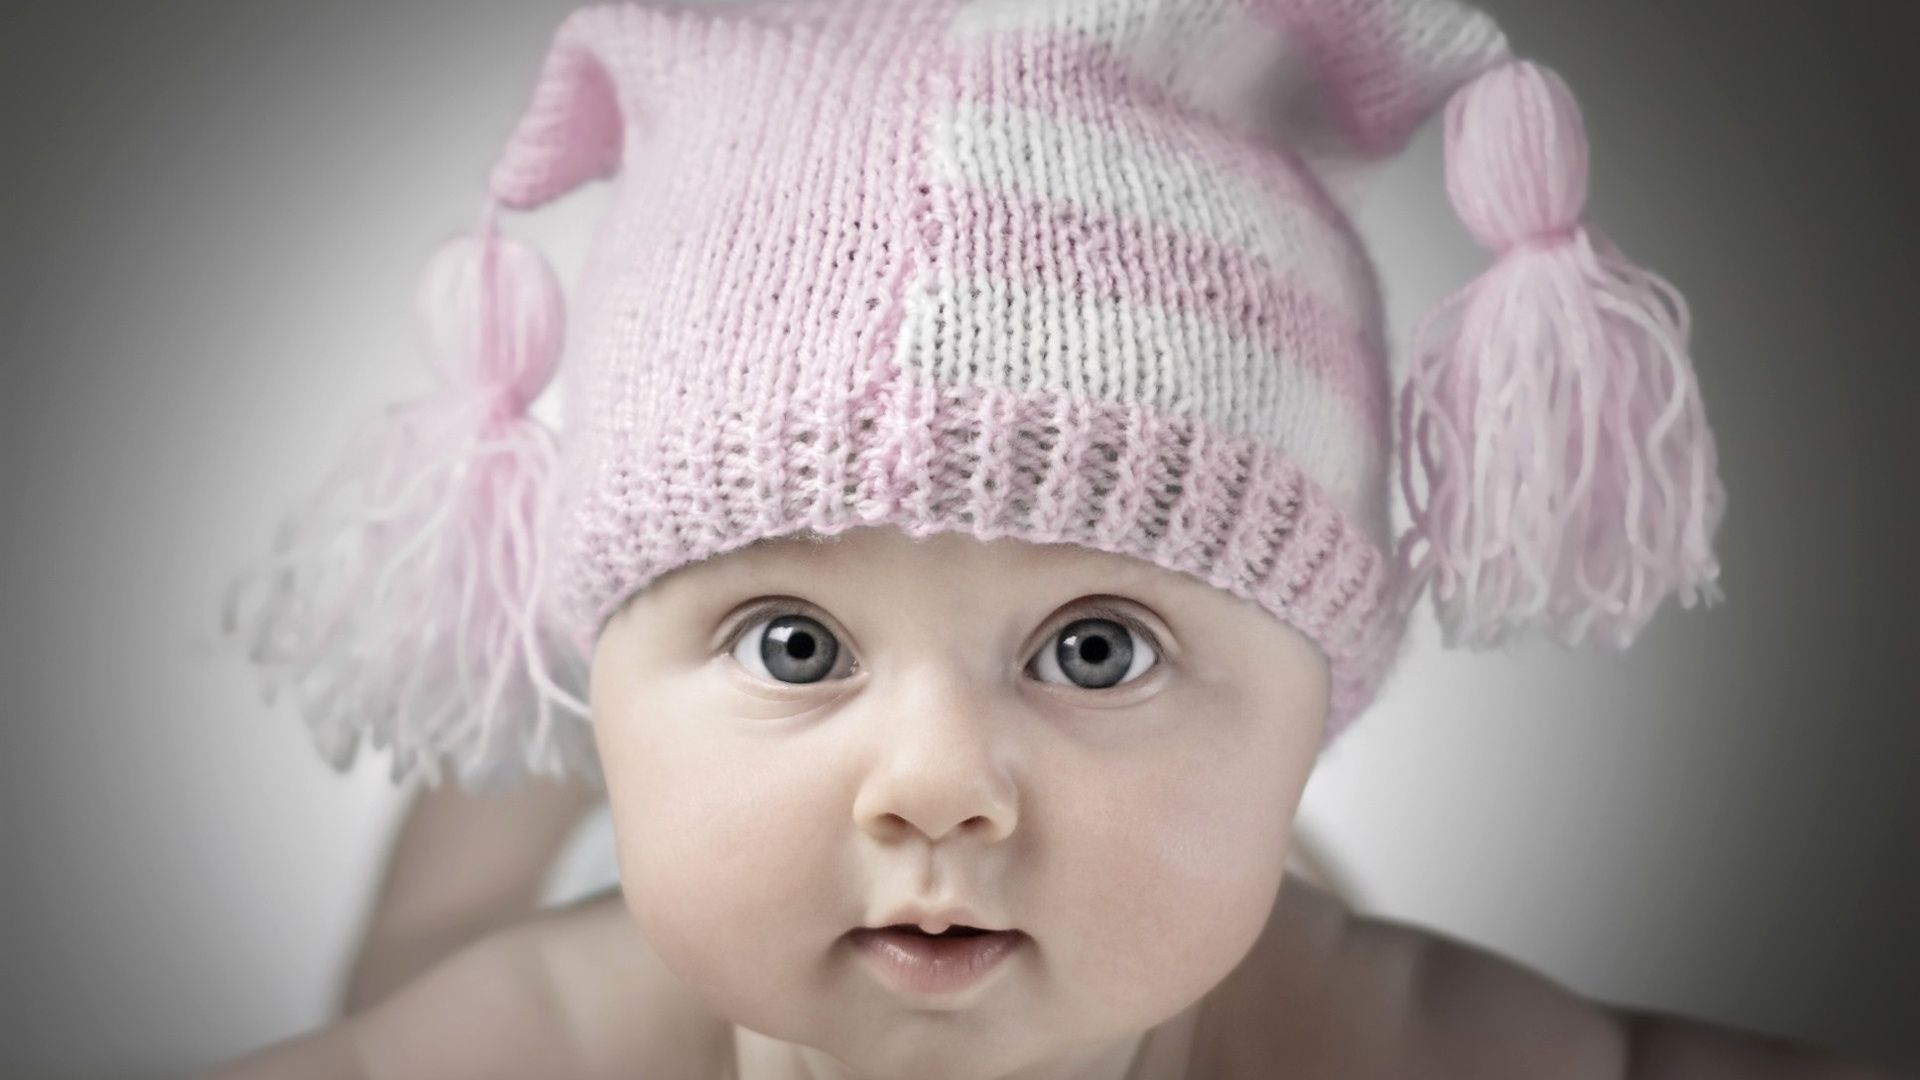 Beautiful Baby Cute Baby Pictures Cute Baby Wallpaper Baby Wallpaper